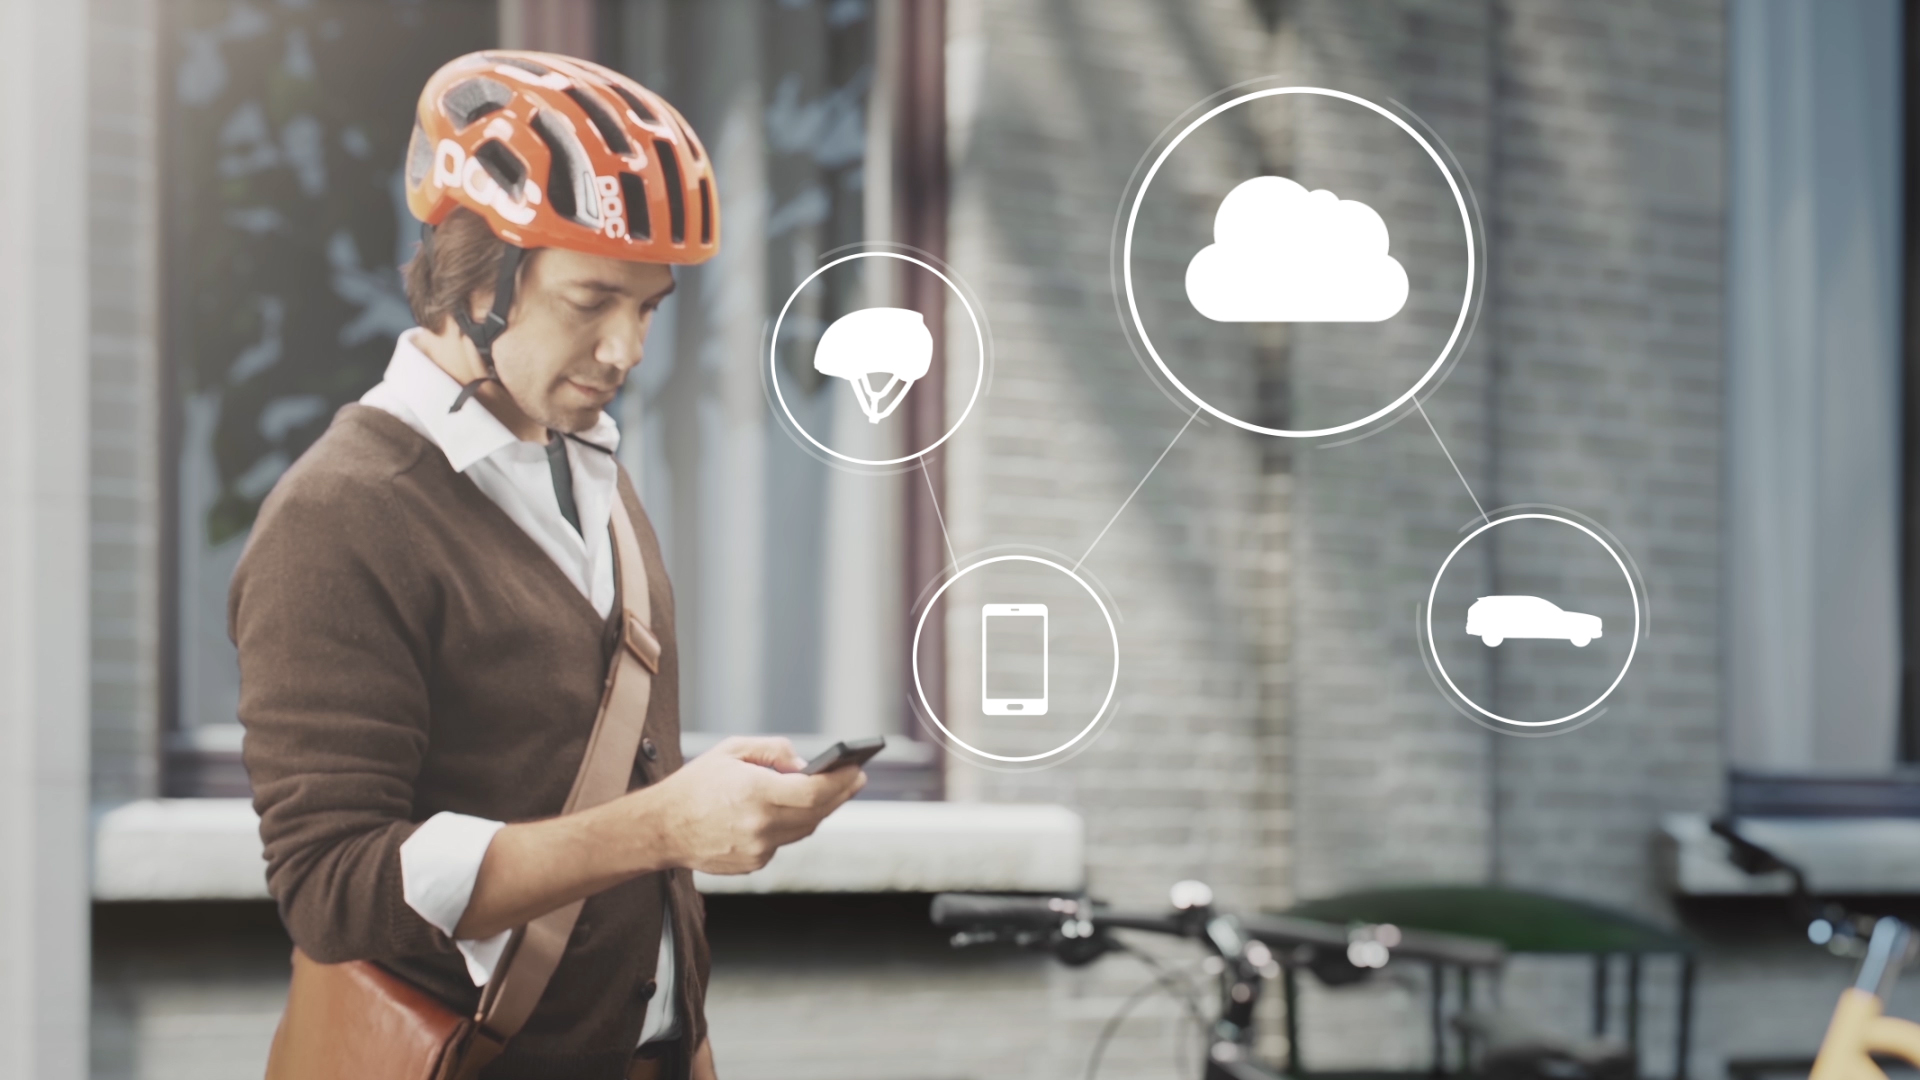 Volvo, Ericsson and POC Partner for Cycle Safety Technology